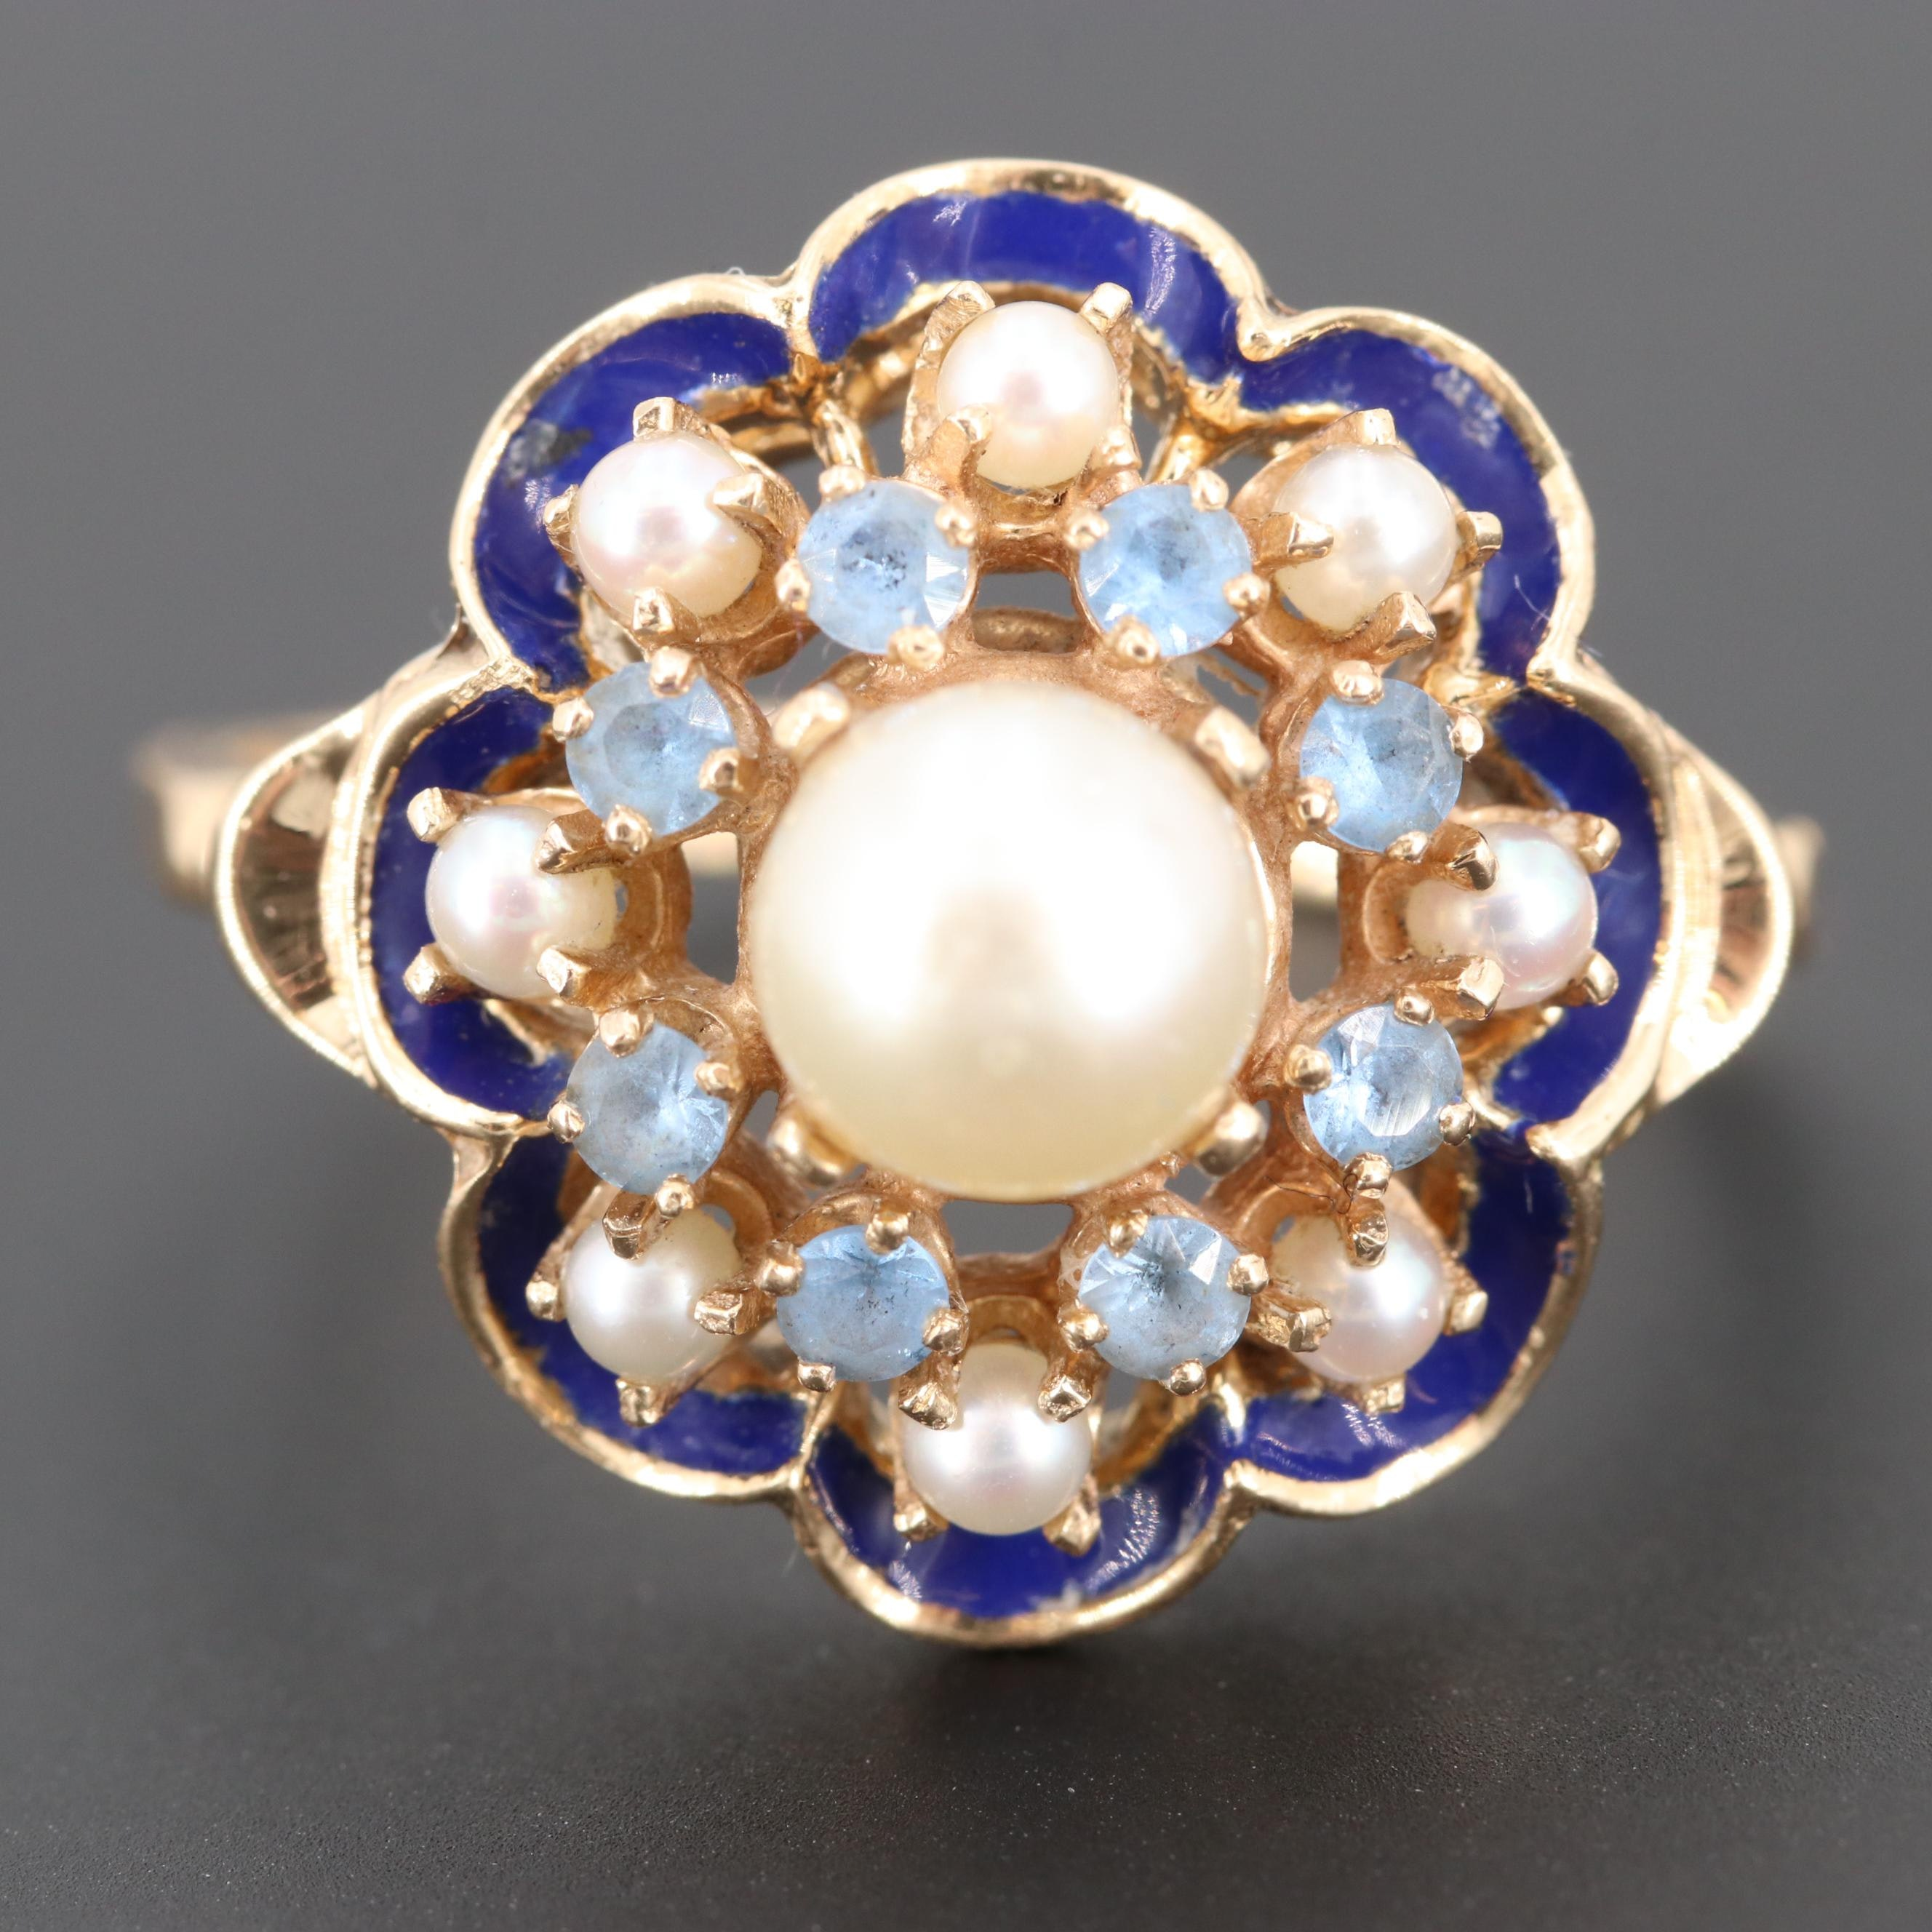 Circa 1930s Ostby & Barton 14K Yellow Gold Cultured Pearl, Topaz and Enamel Ring